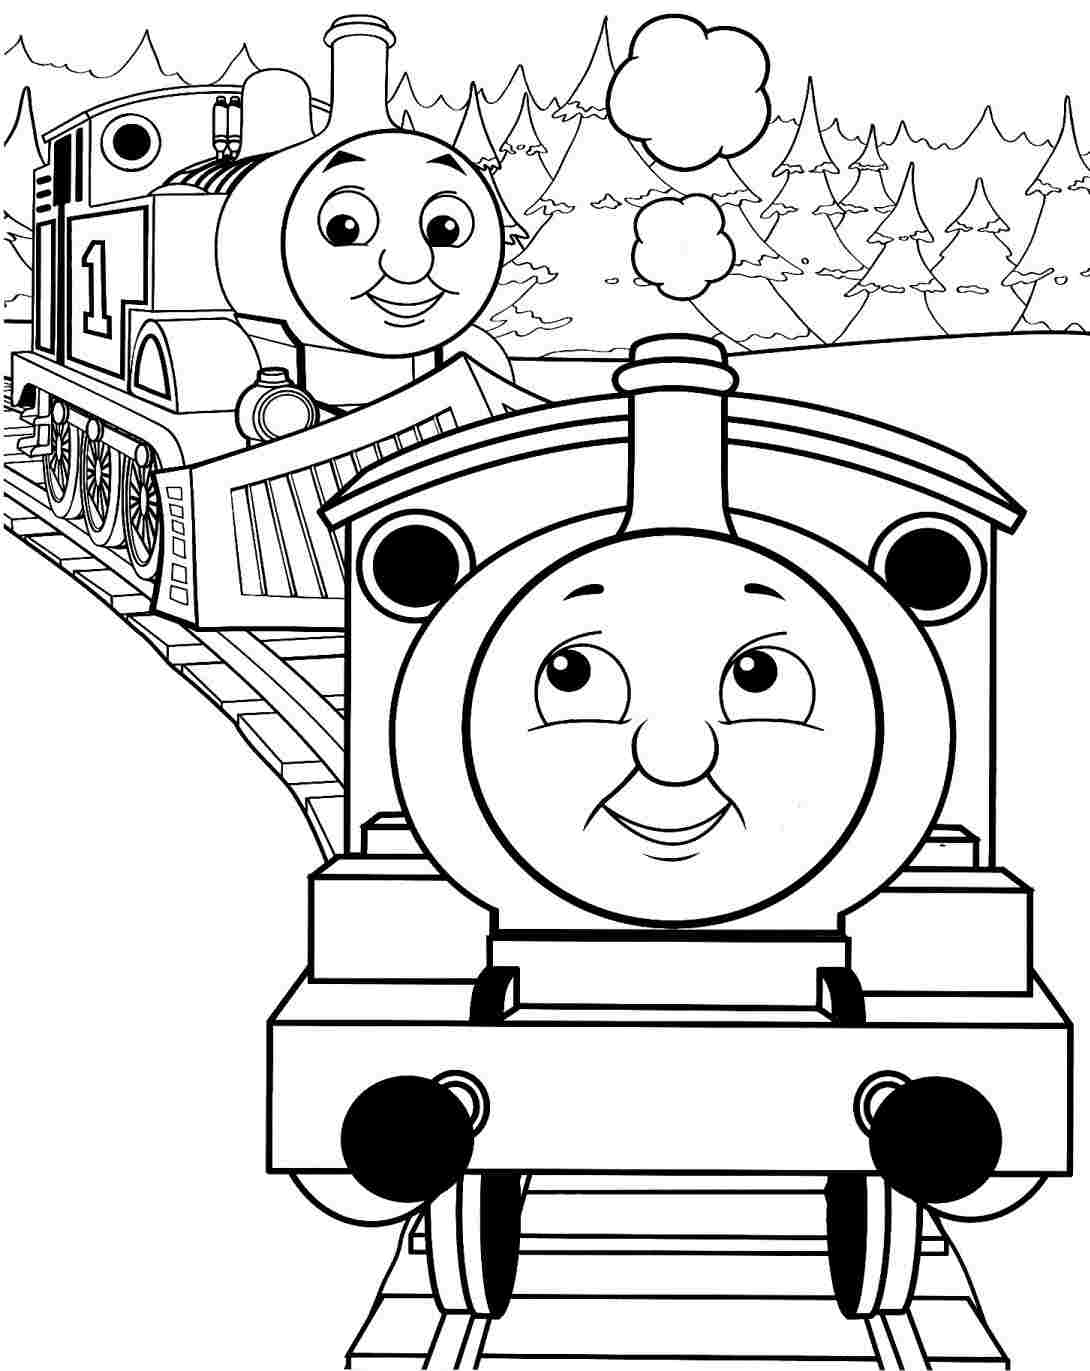 1090x1371 Thomas Coloring Pages Simple The Train Ribsvigyapan Belle Percy